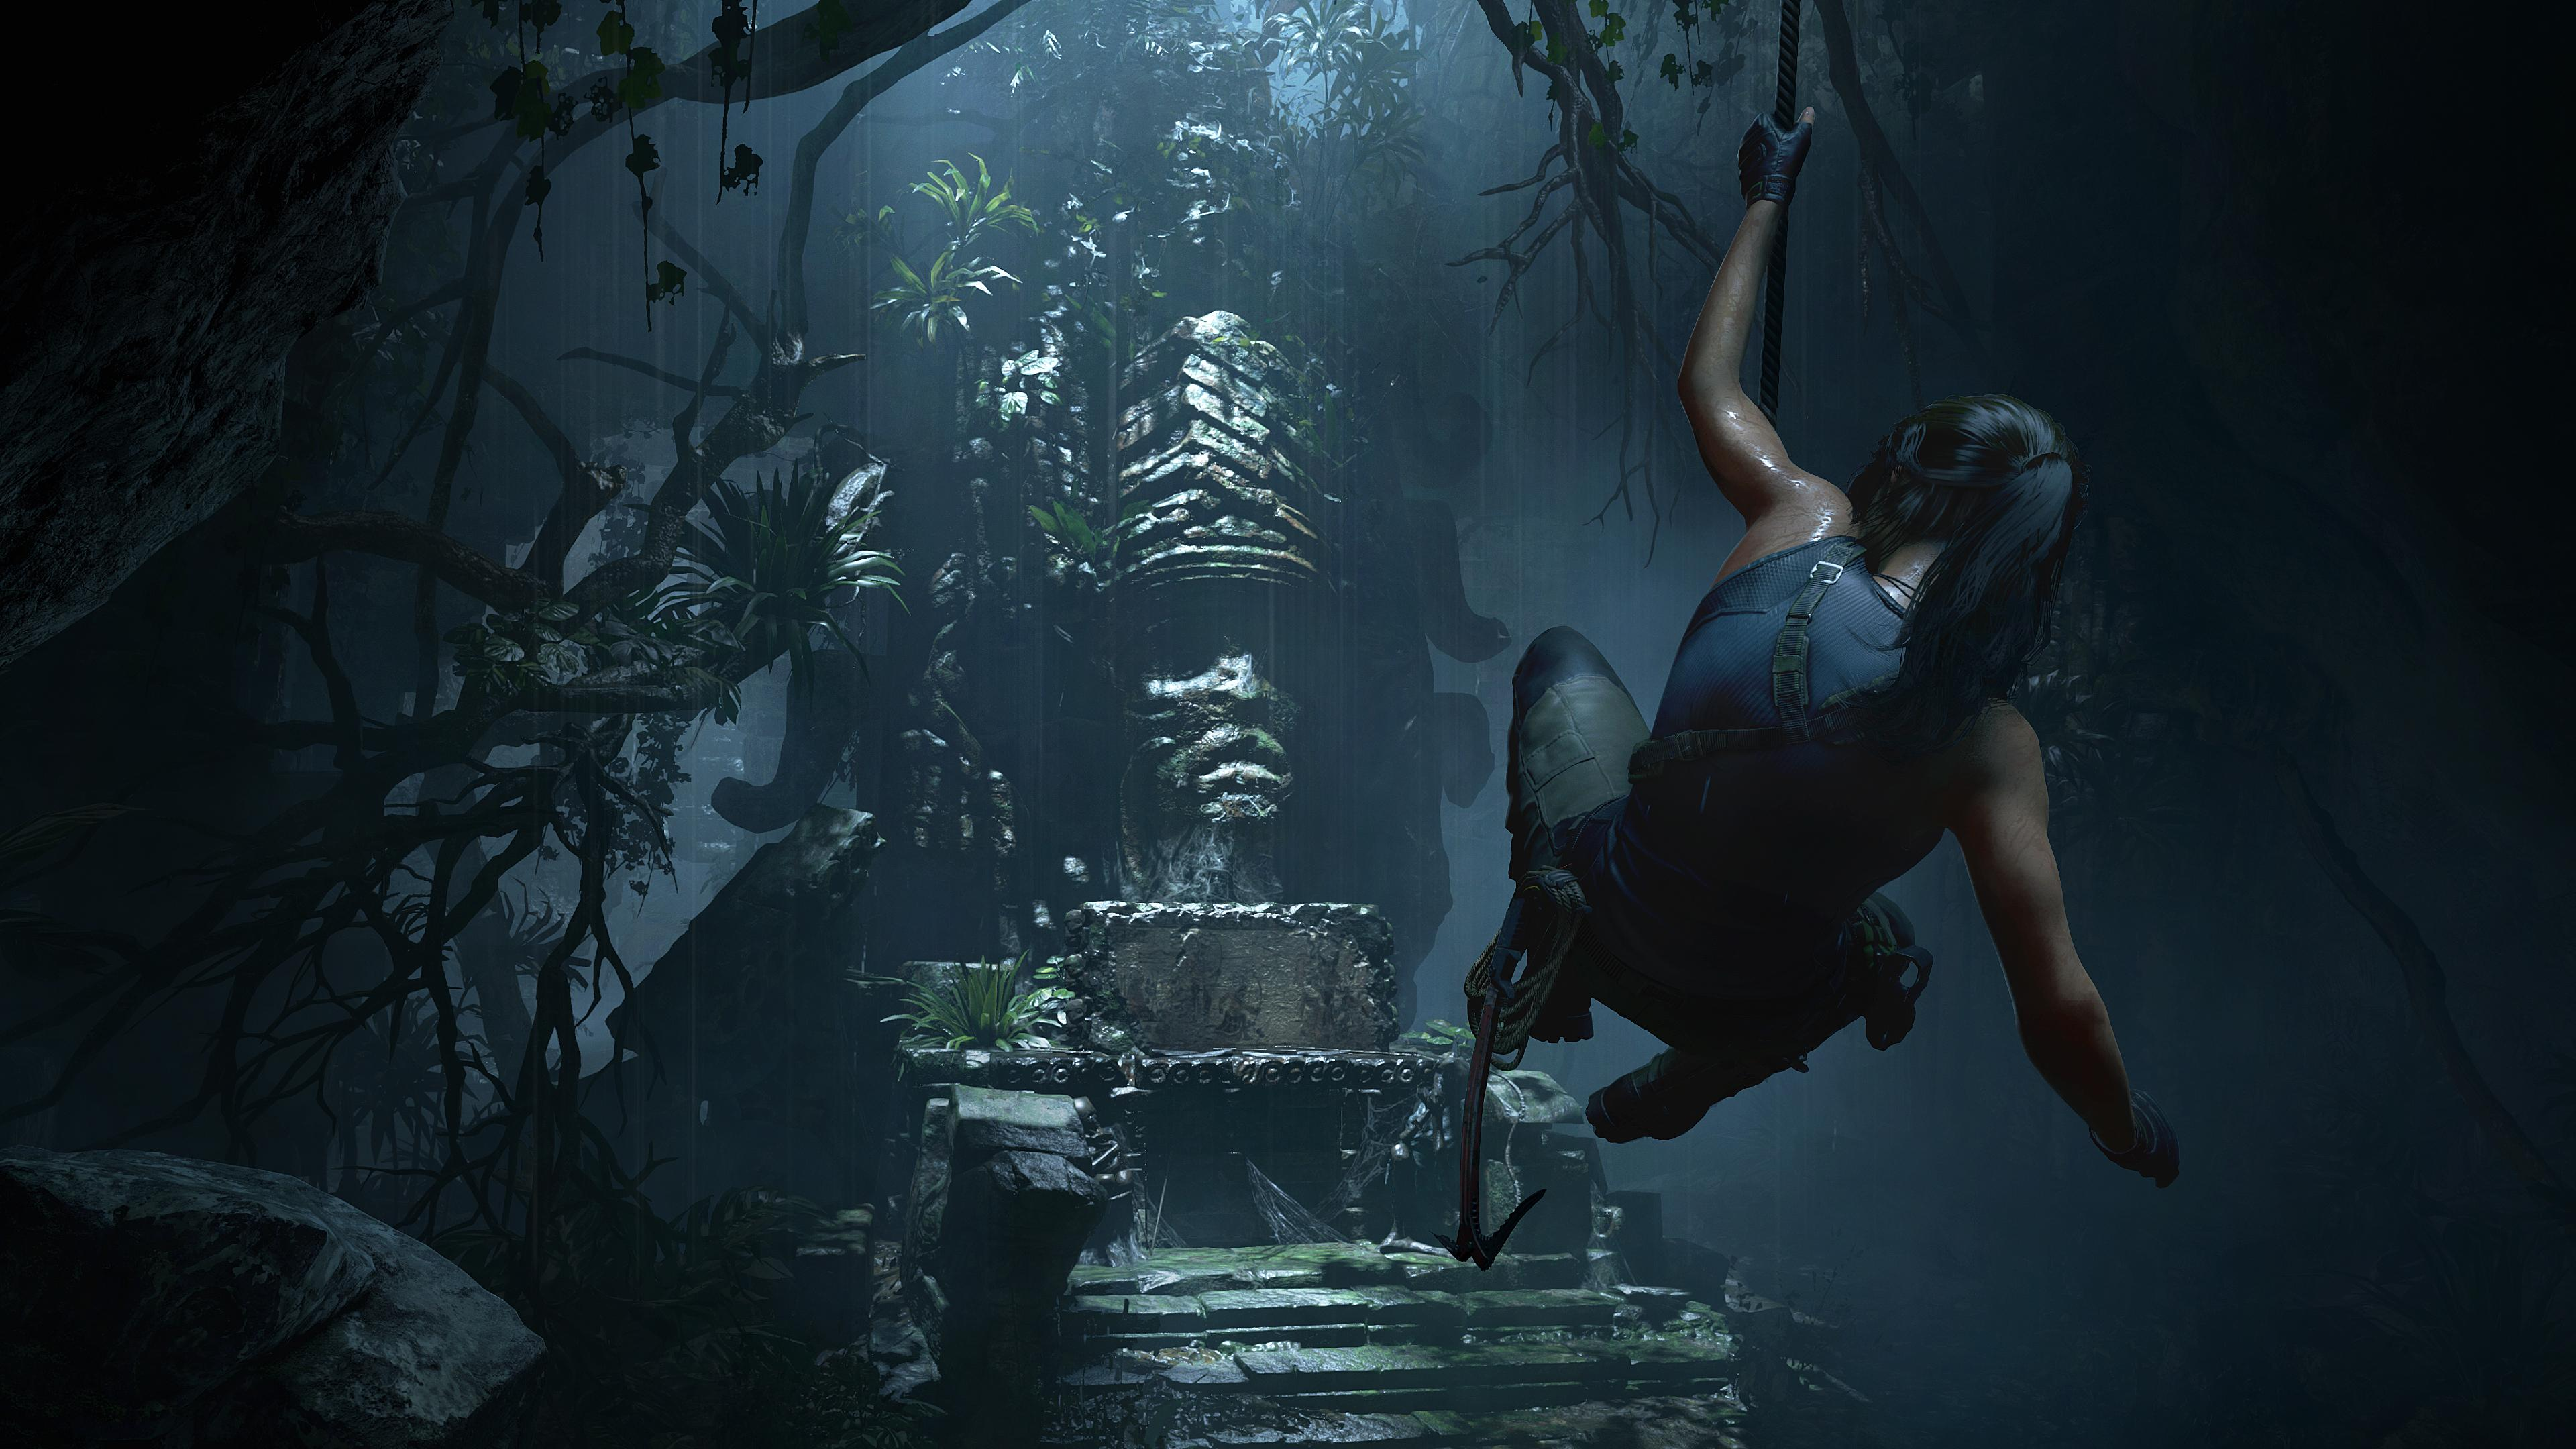 Shadow-of-the-Tomb-Raider-E32018-screen02